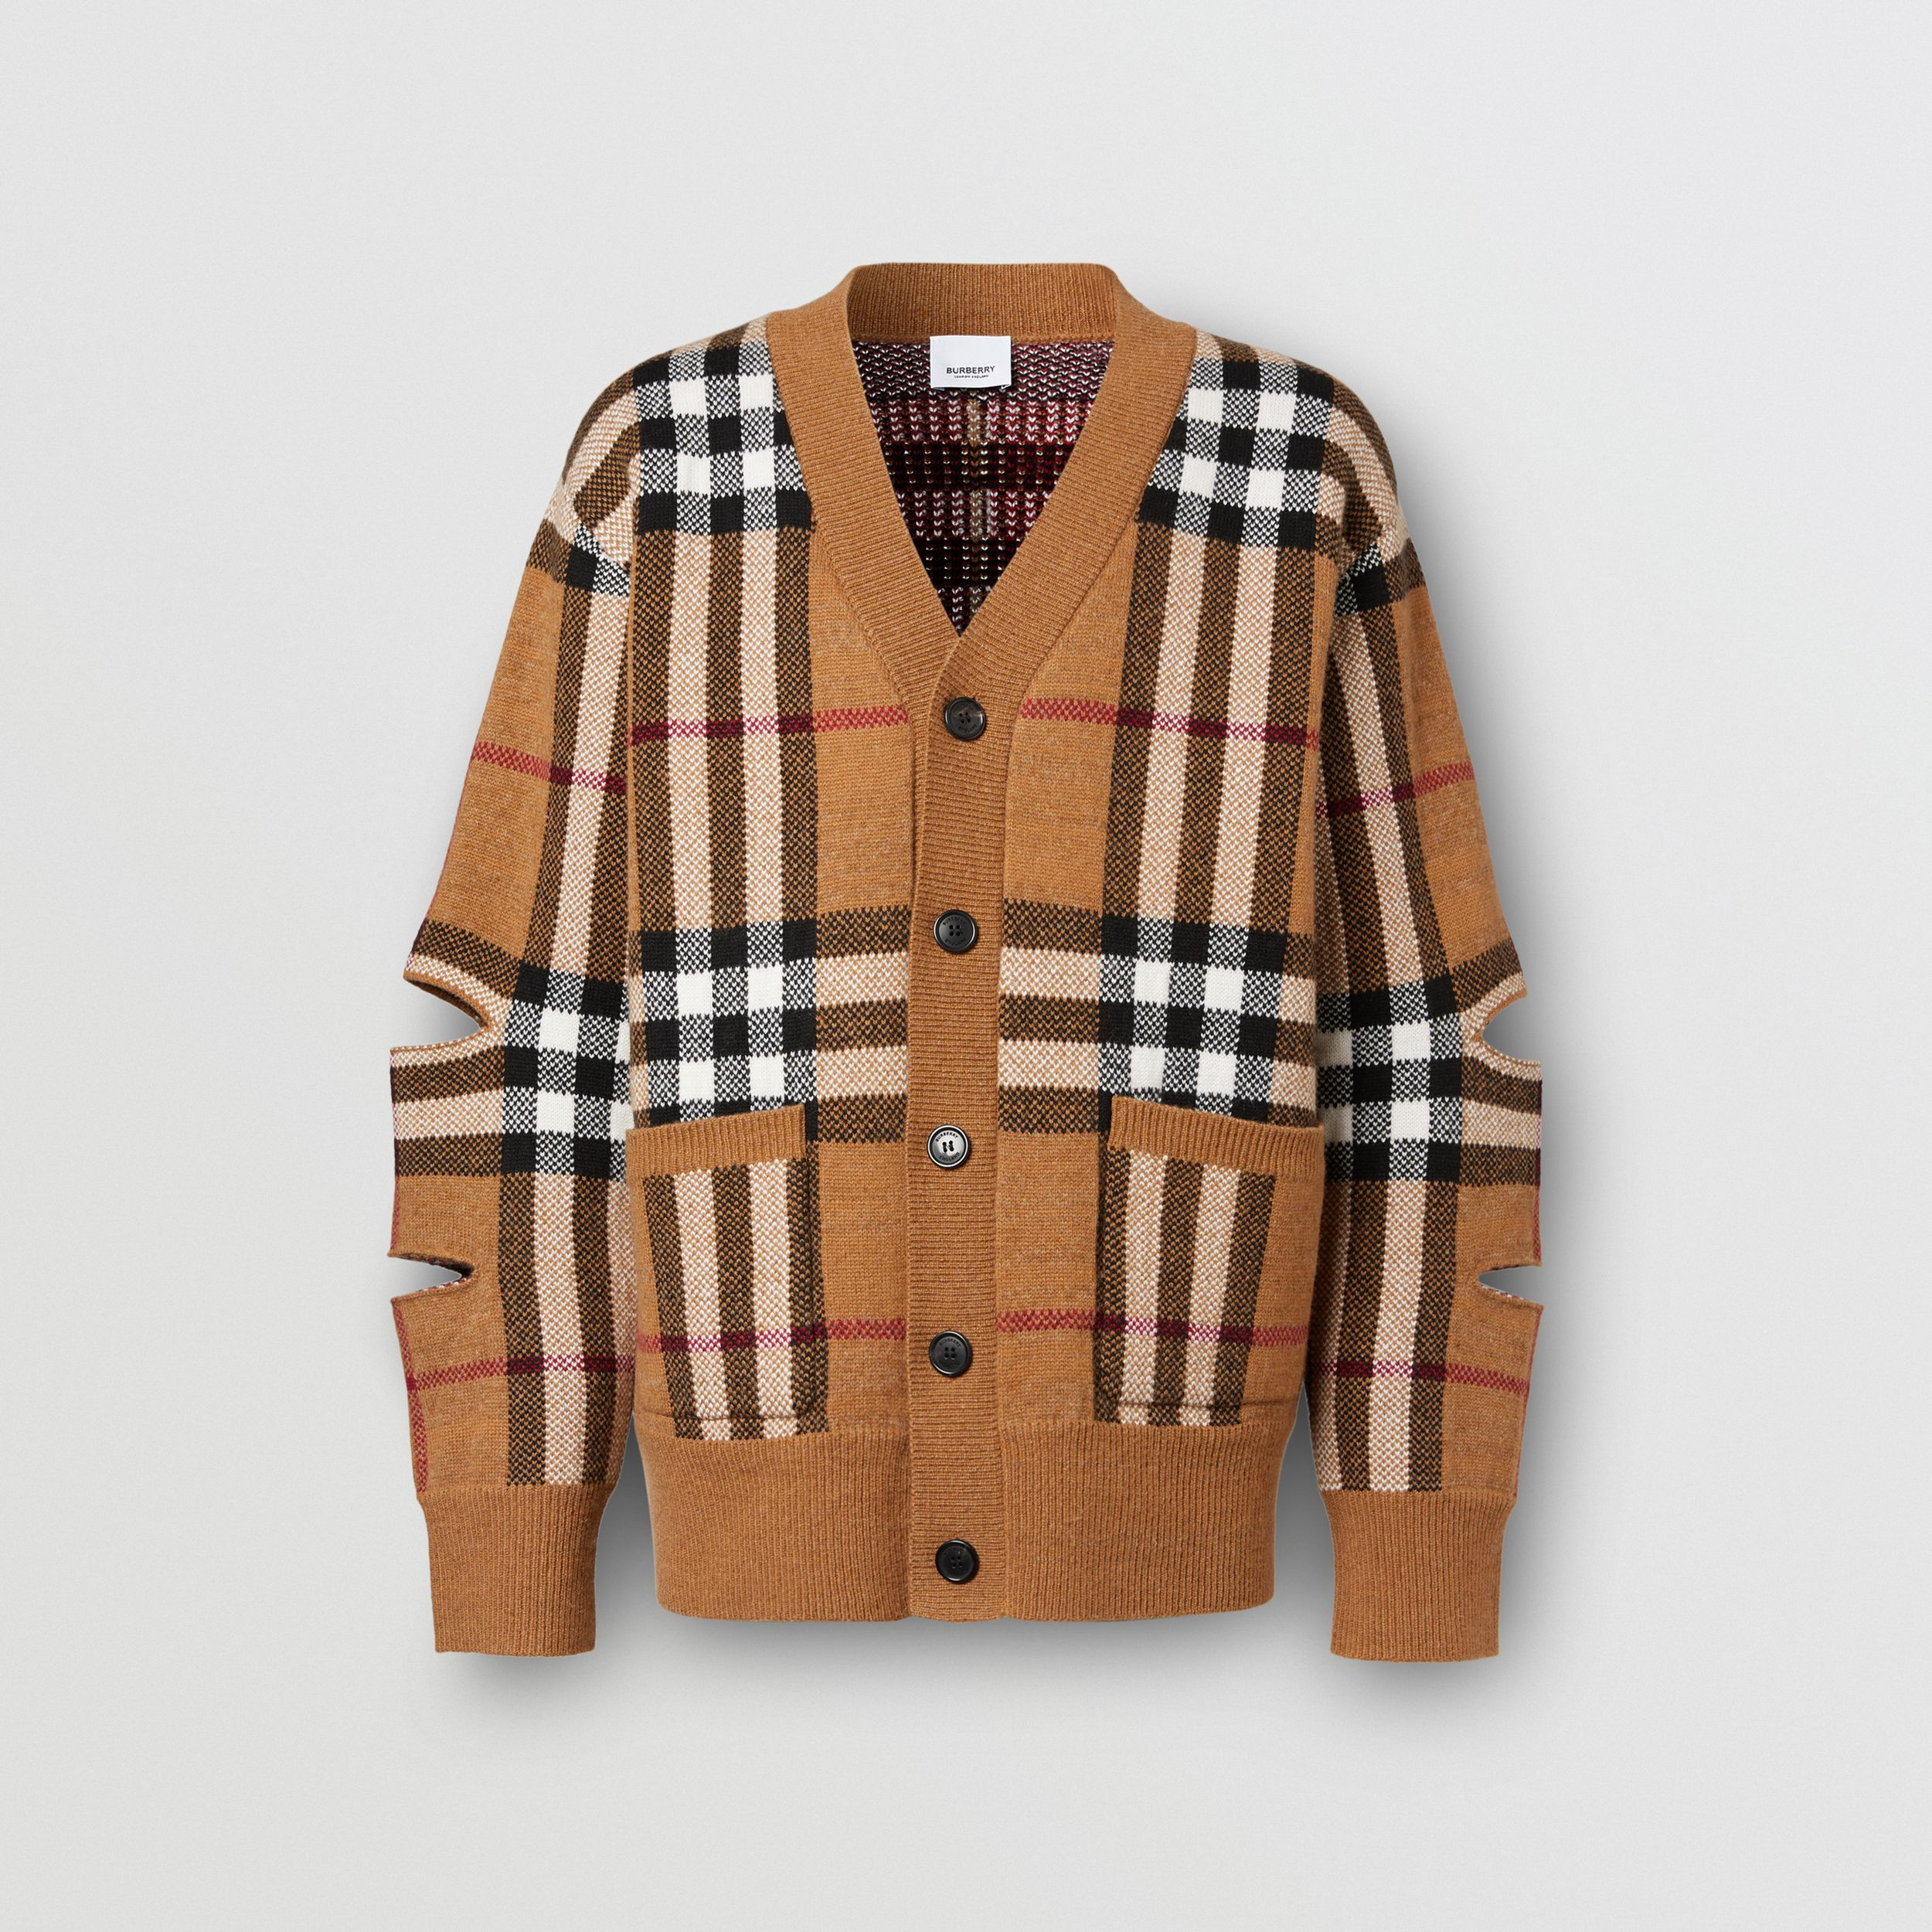 Cut-out Sleeve Check Wool Cashmere Cardigan in Birch Brown | Burberry - 4